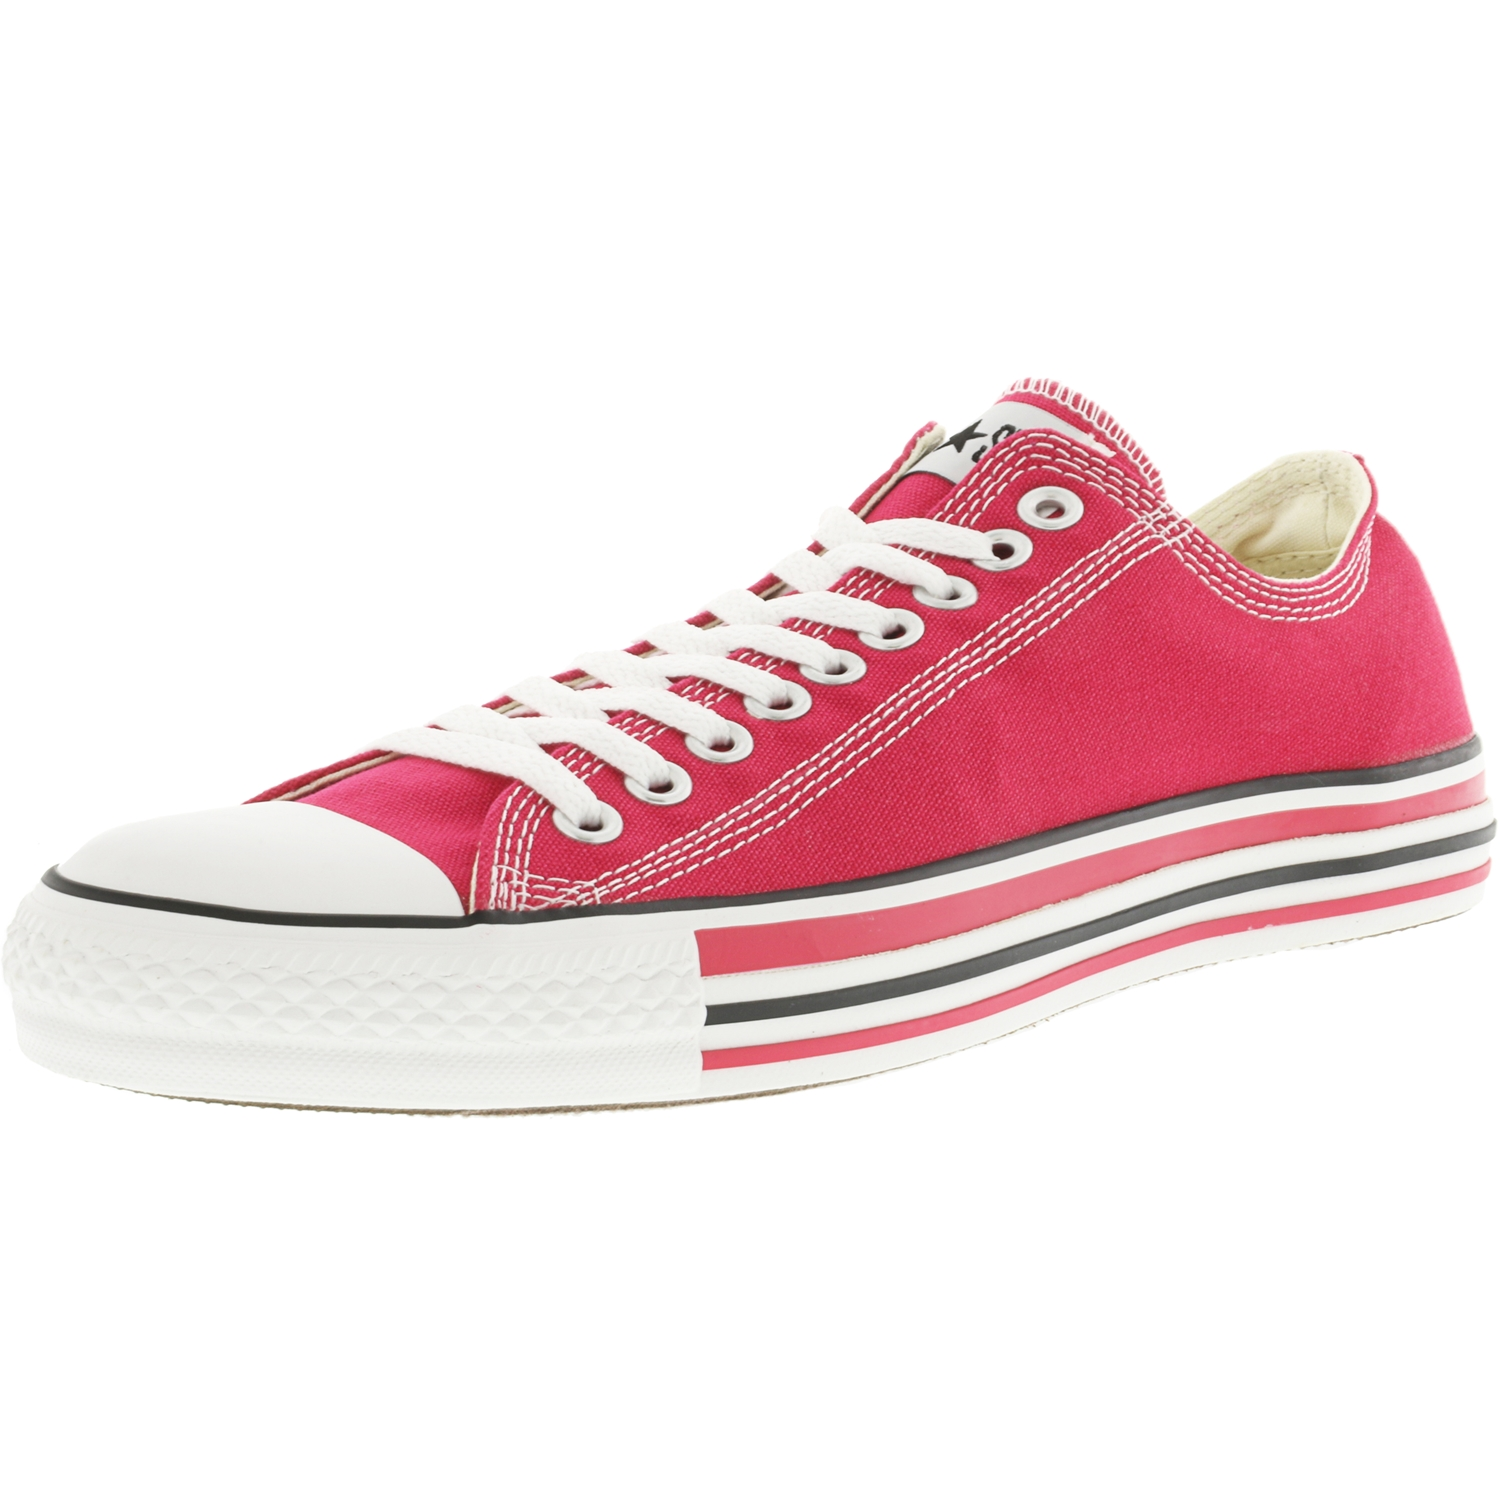 f40b6bef38c0 Converse. All Categories+. Clothing